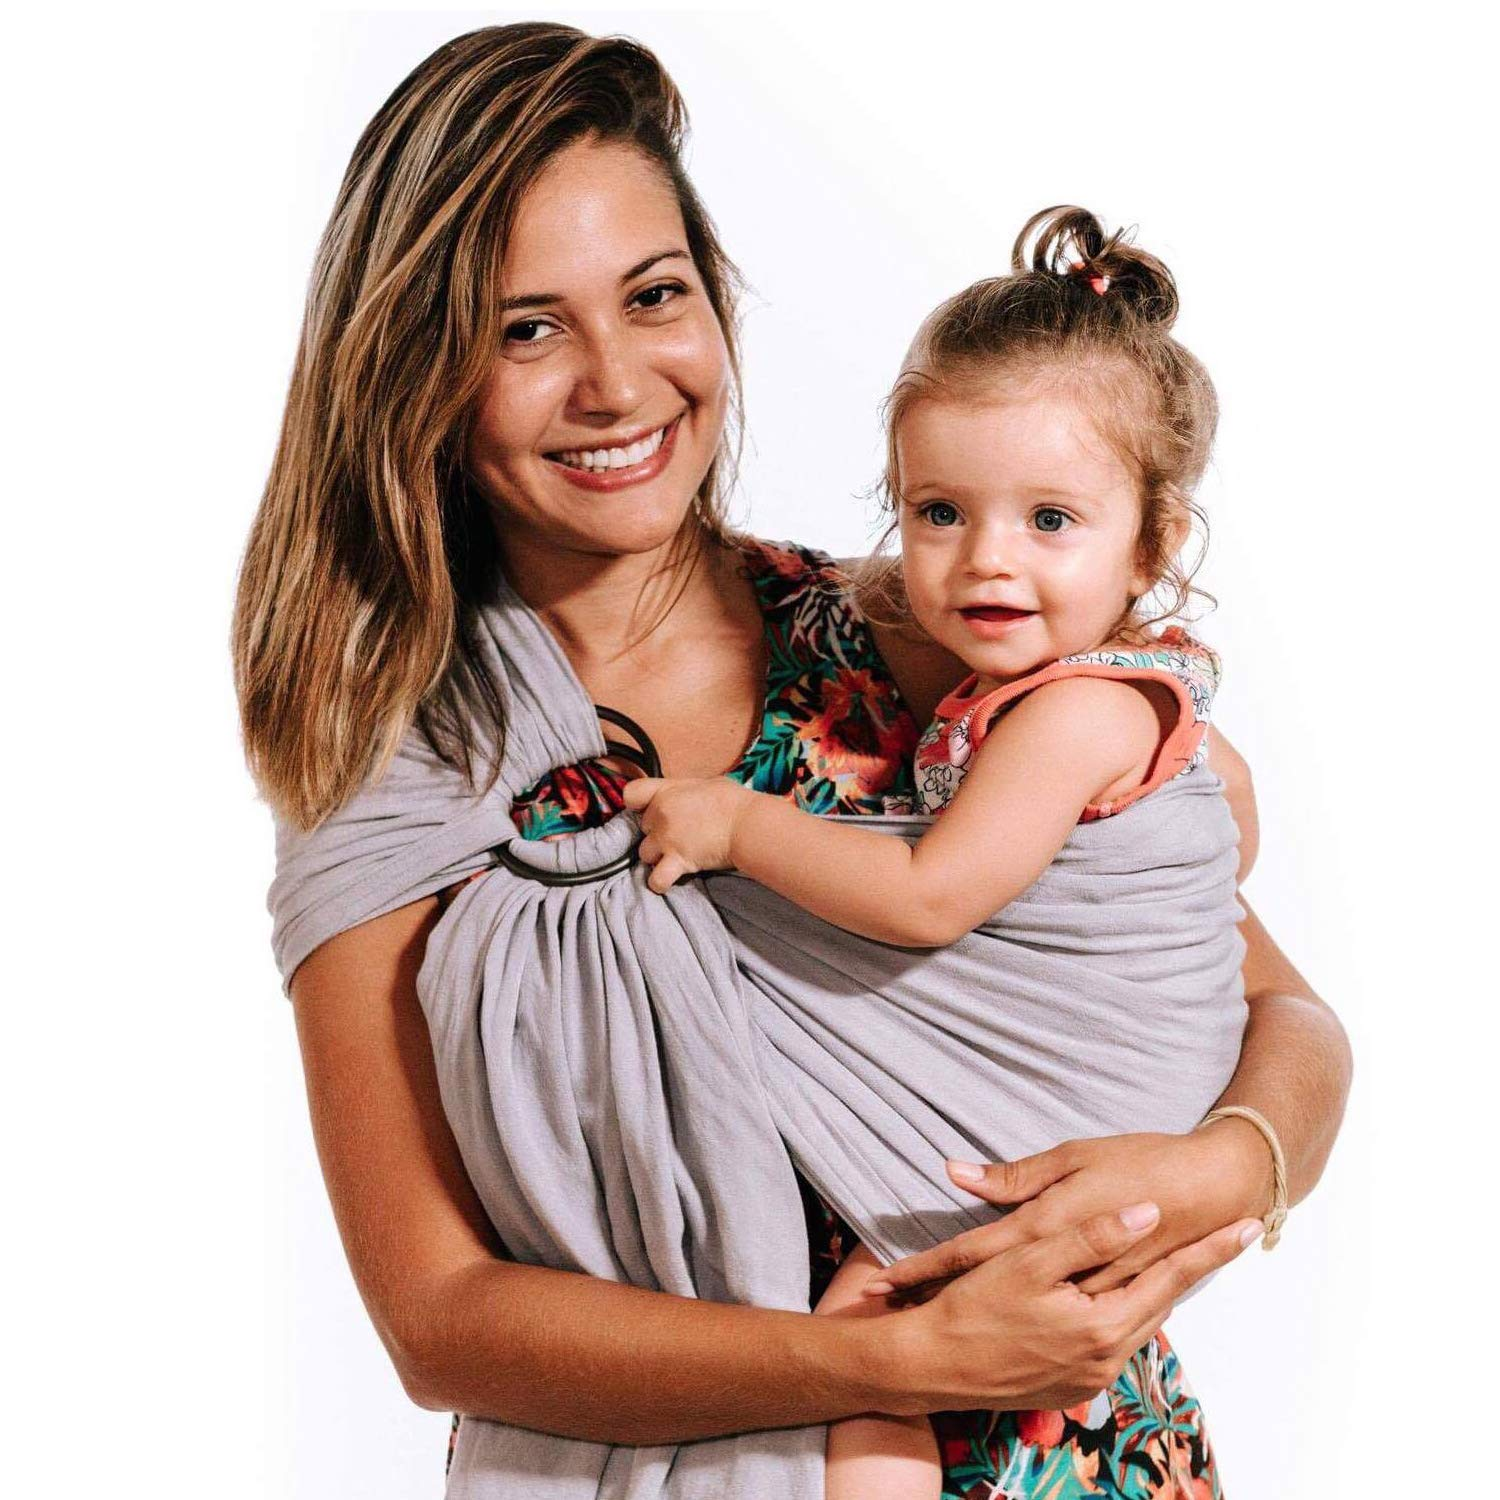 Nalakai Luxury Ring Sling Baby Carrier – Extra-Soft Bamboo and Linen Fabric - Lightweight wrap - for Newborns, Infants and Toddlers - Perfect Baby Shower Gift - Nursing Cover (Lilac Cloud)